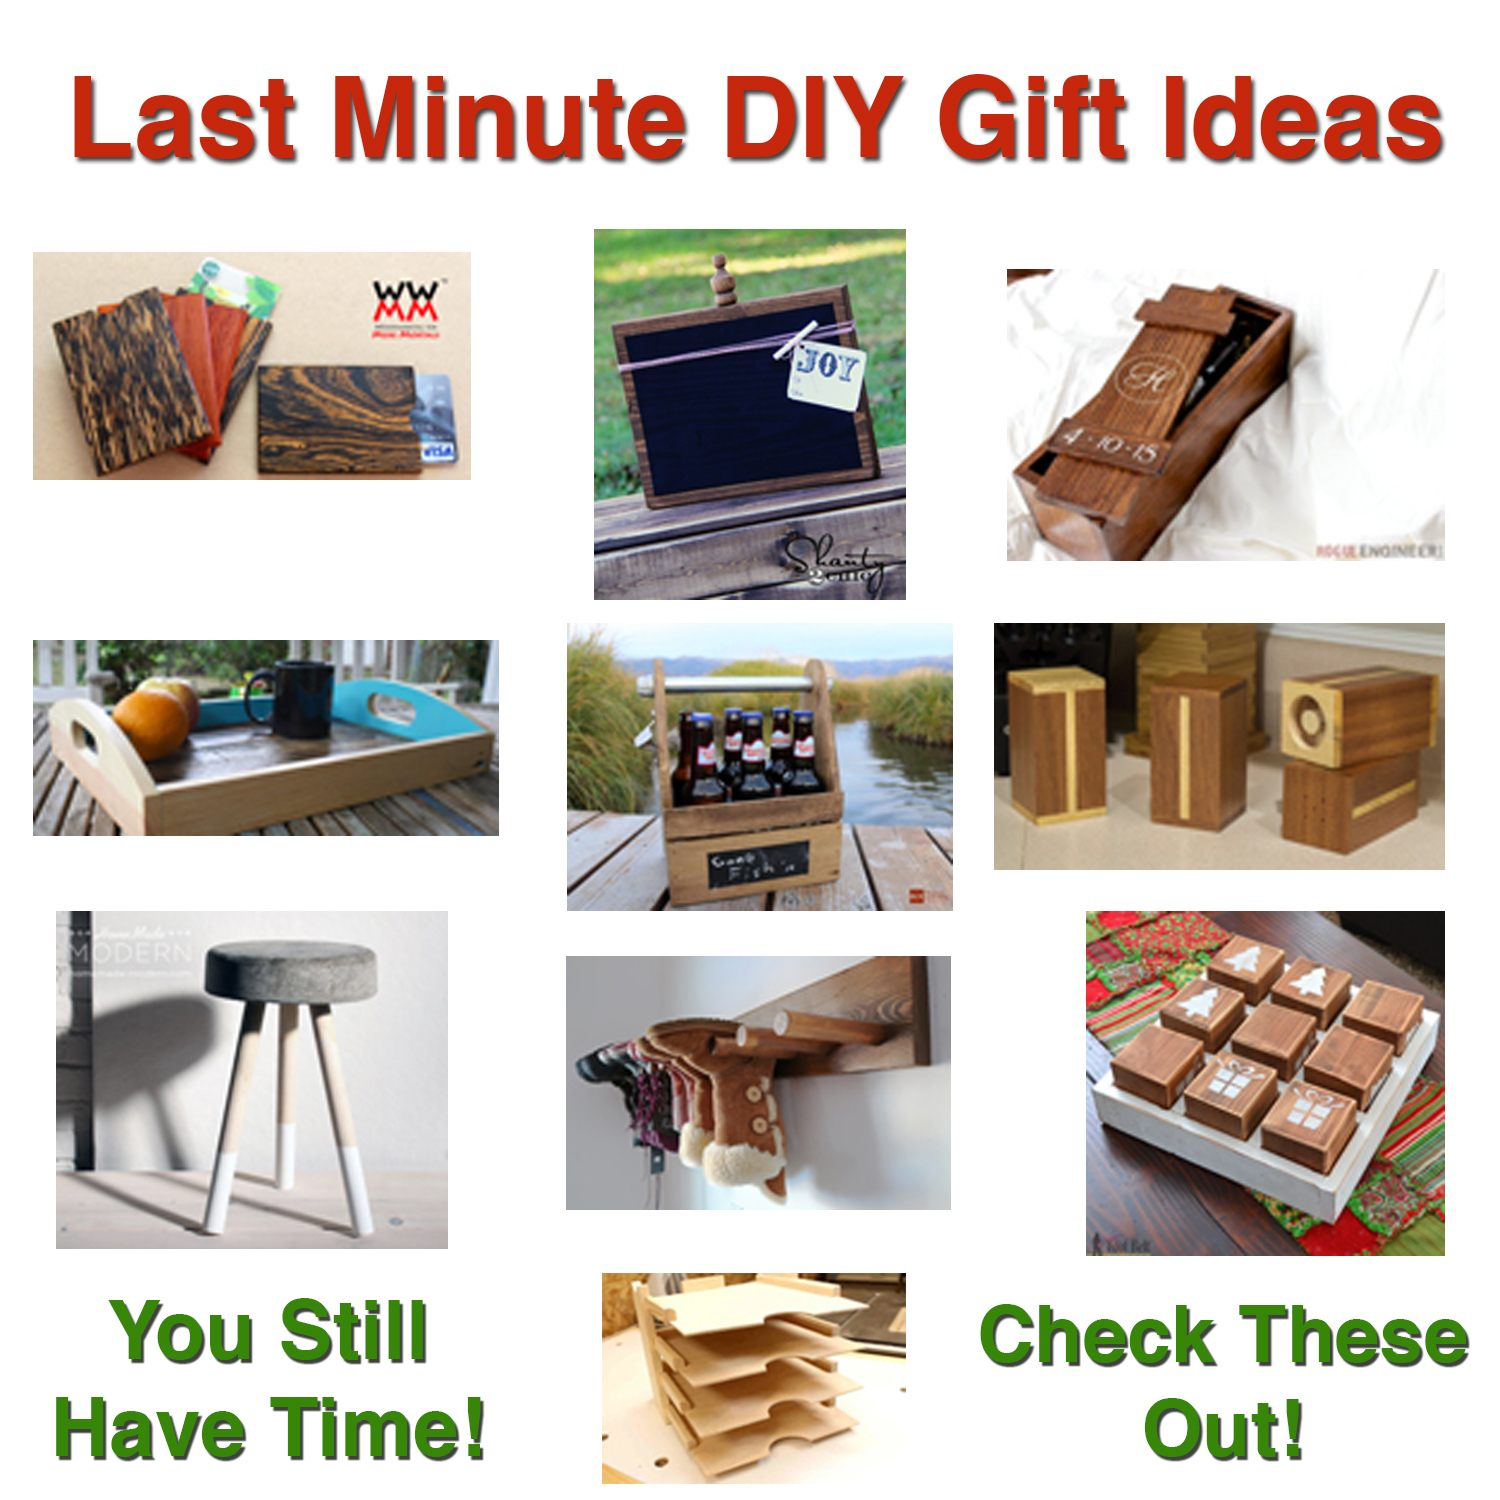 Last Minute DIY Gift Ideas - Top DIY Bloggers